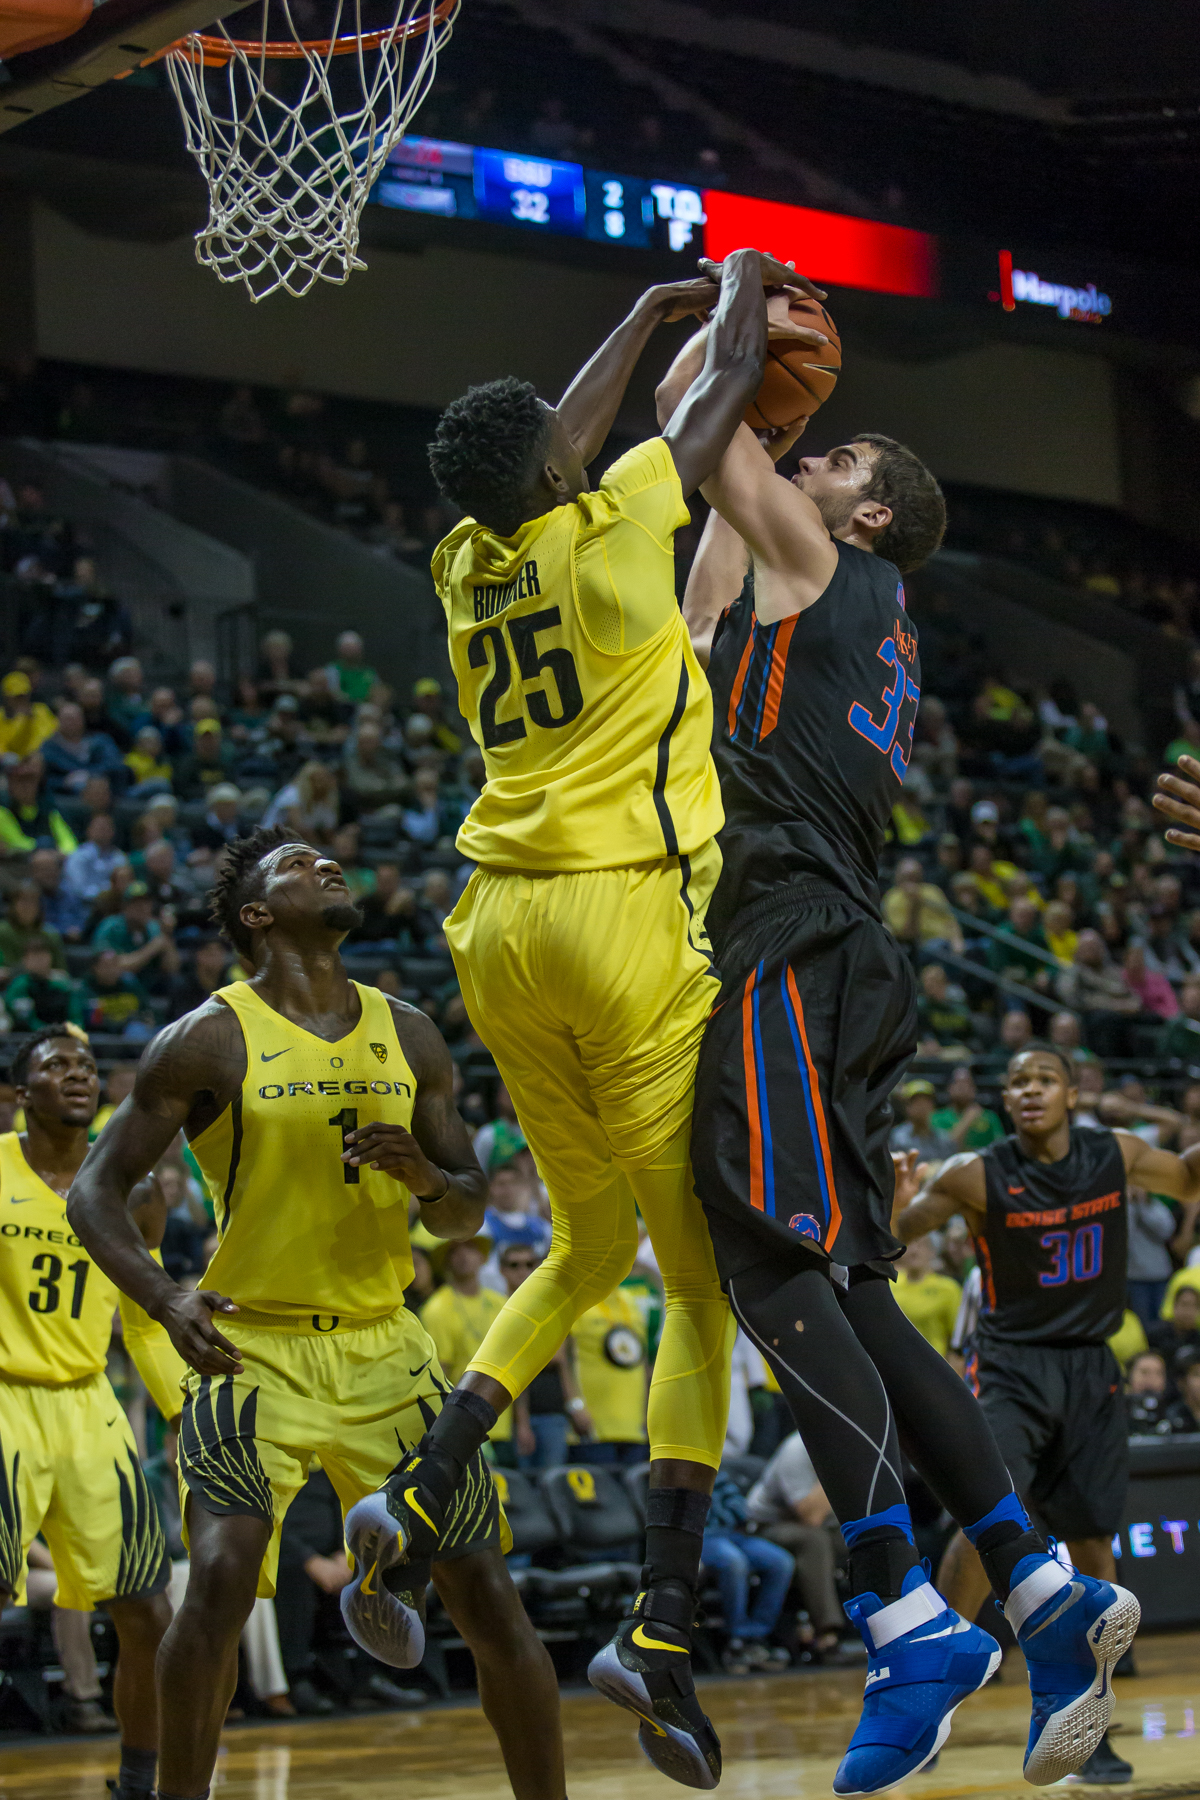 Oregon forward Chris Boucher (#25) blocks Boise State forward David Wacker's (#33) shot. After trailing for most of the game, the Oregon Ducks defeated the Boise State Broncos 68-63. Photo by Dillon Vibes